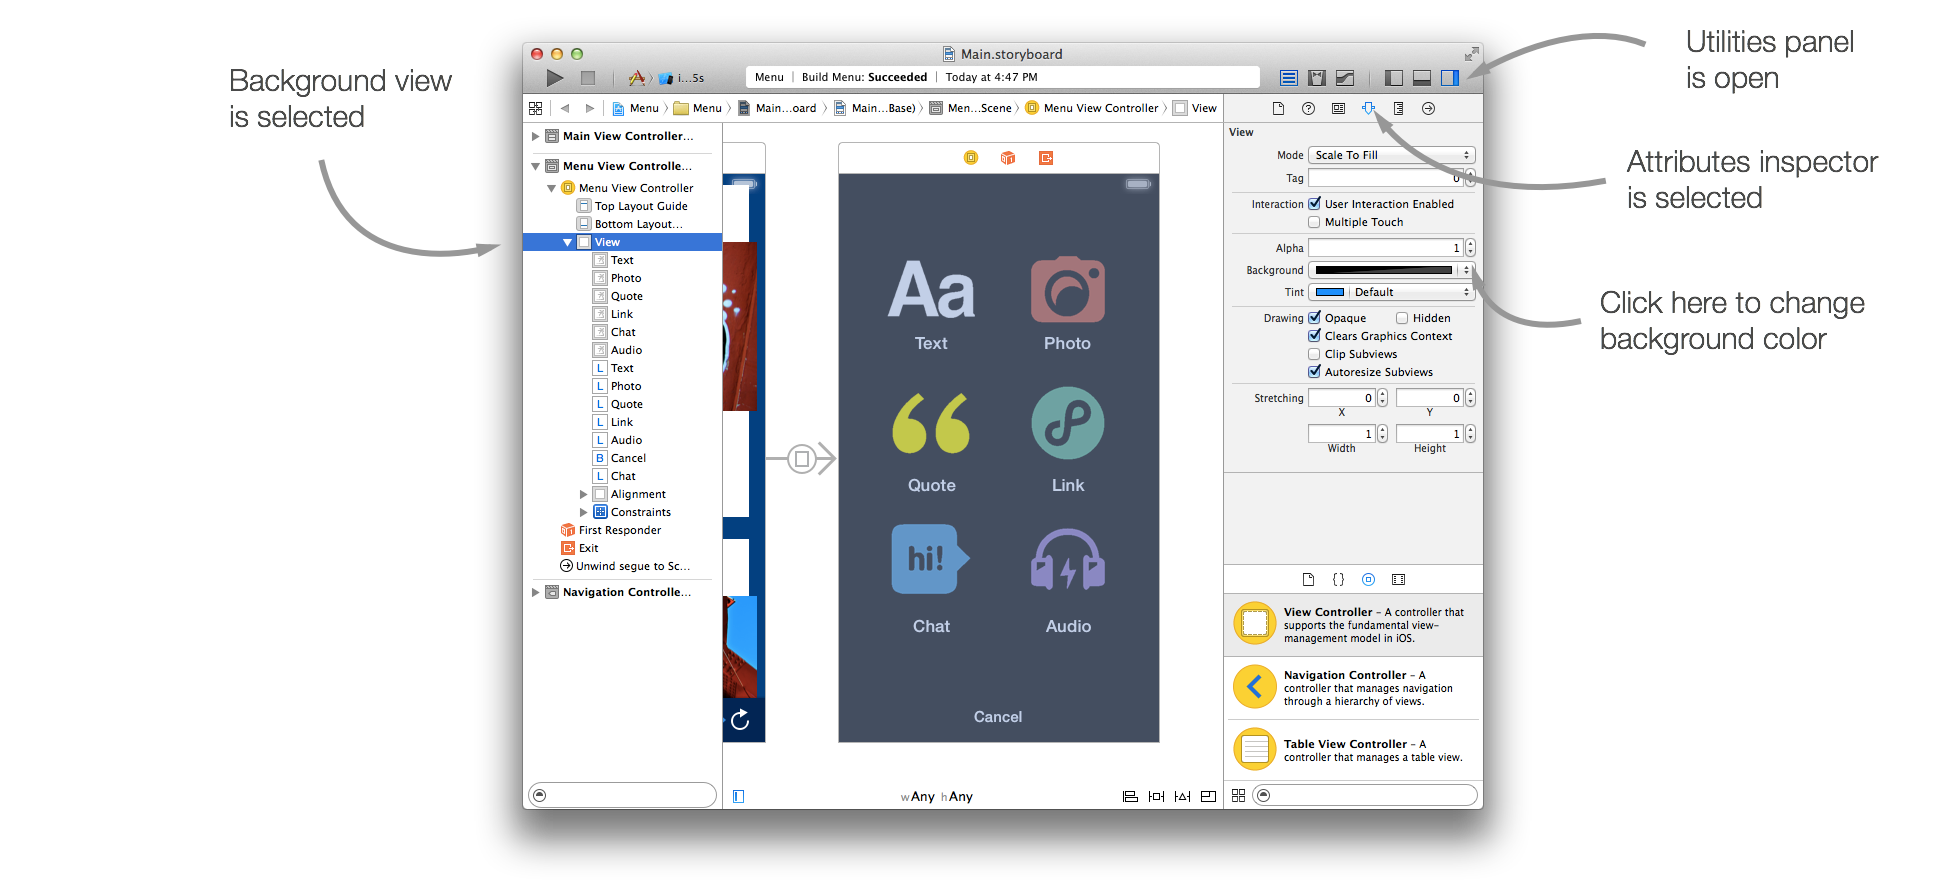 Background image xcode storyboard - Running The Project Now You Can See That The Background Screen Is Visible While The Slide Up Transition Is In Progress But When It Ends It Disappears And